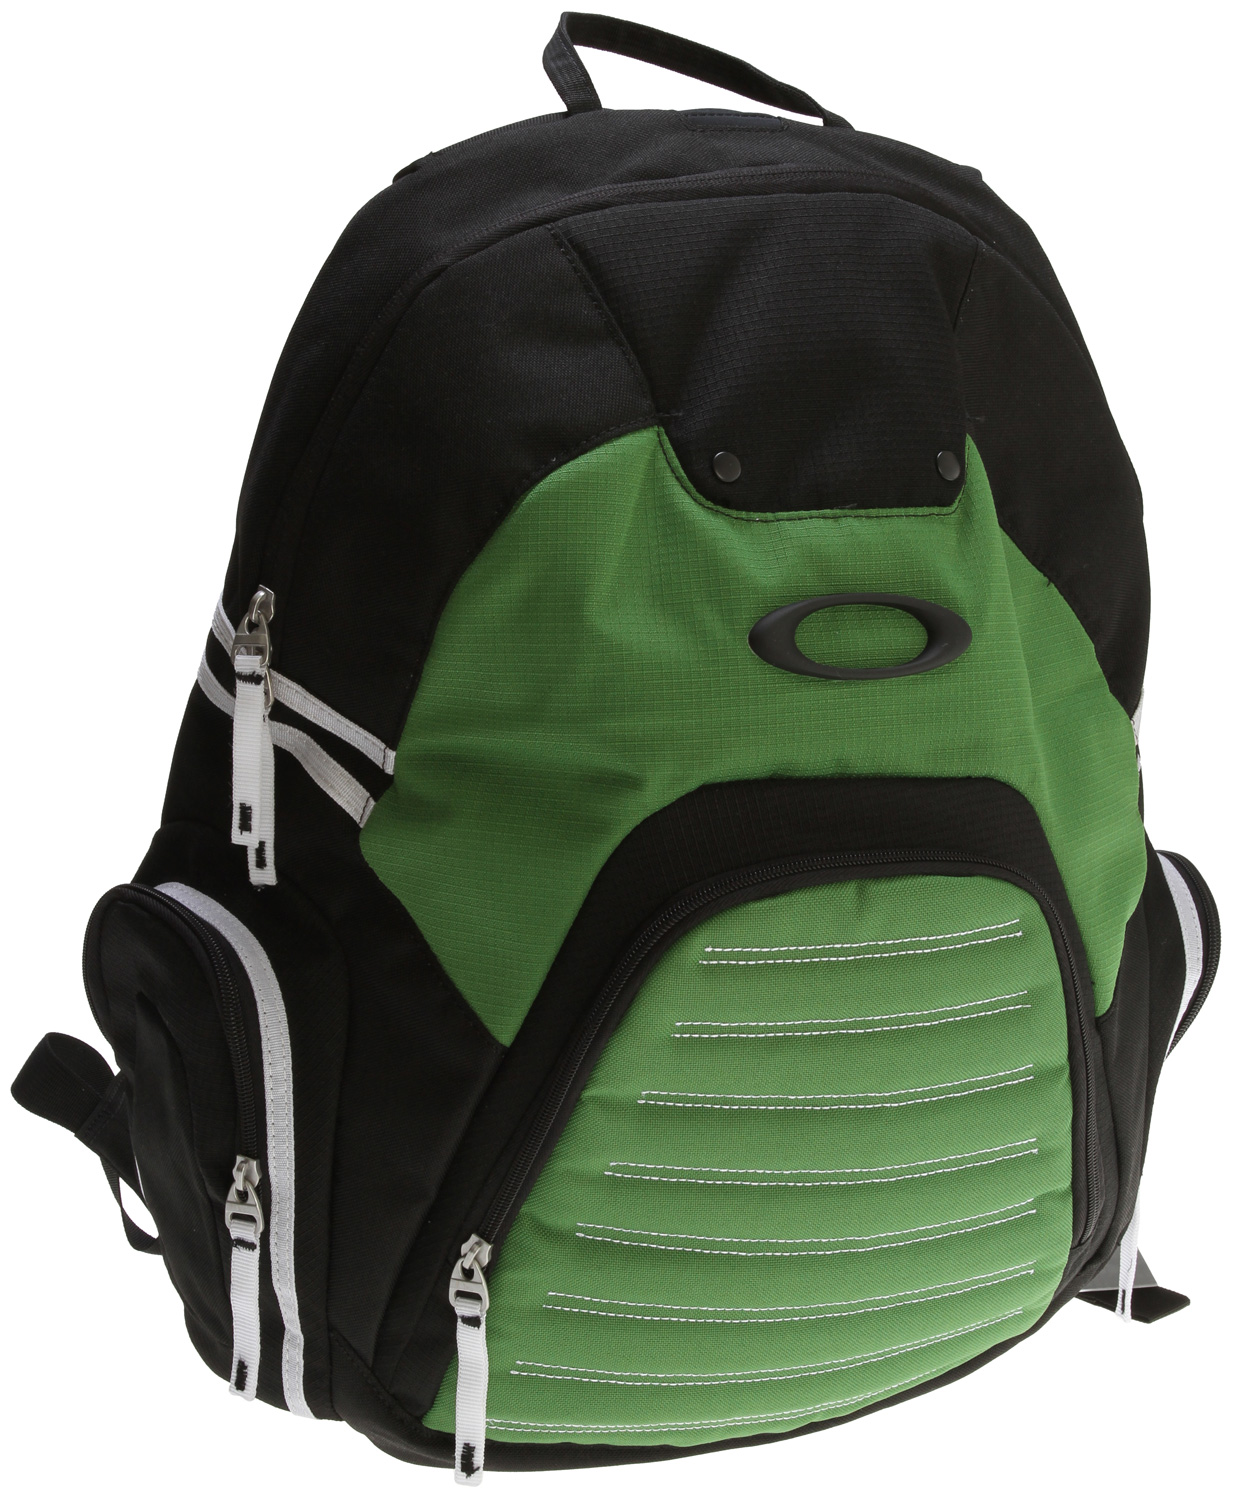 "Key Features of the Oakley Peak Load Backpack: 30L capacity Holds most 15"" laptops Organizer panel Brushed optics pocket on side Media pocket with headphone port Optics holster on shoulder strap Pique mesh back panel 19"" l x 15"" w x 5.5"" d - $34.95"